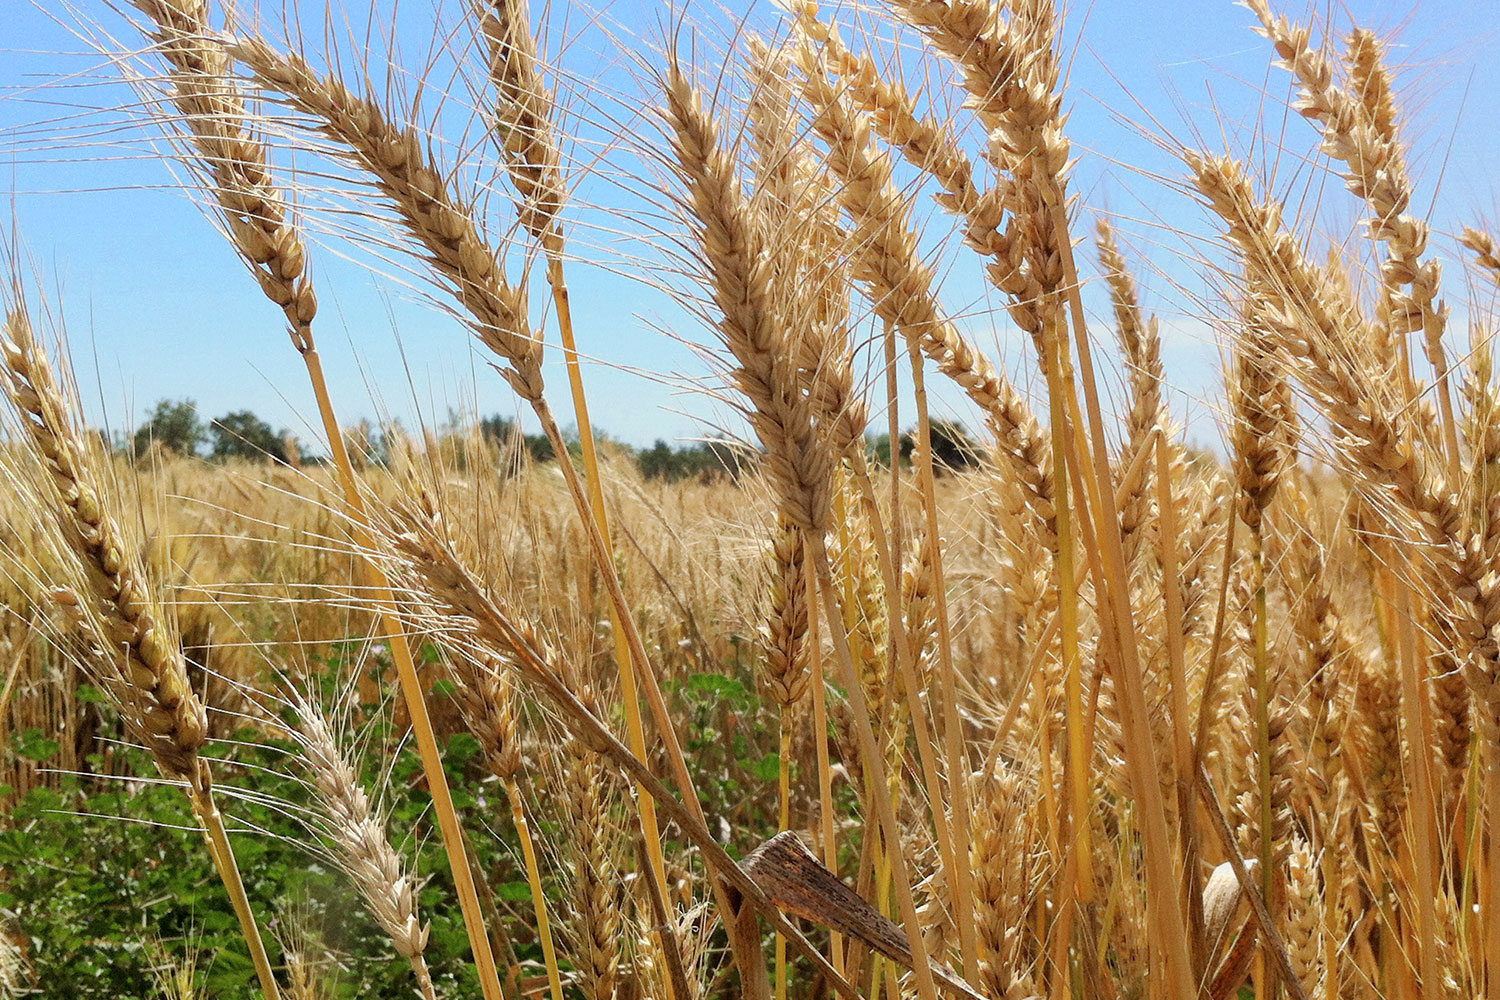 The wheat fields of Capay Mills